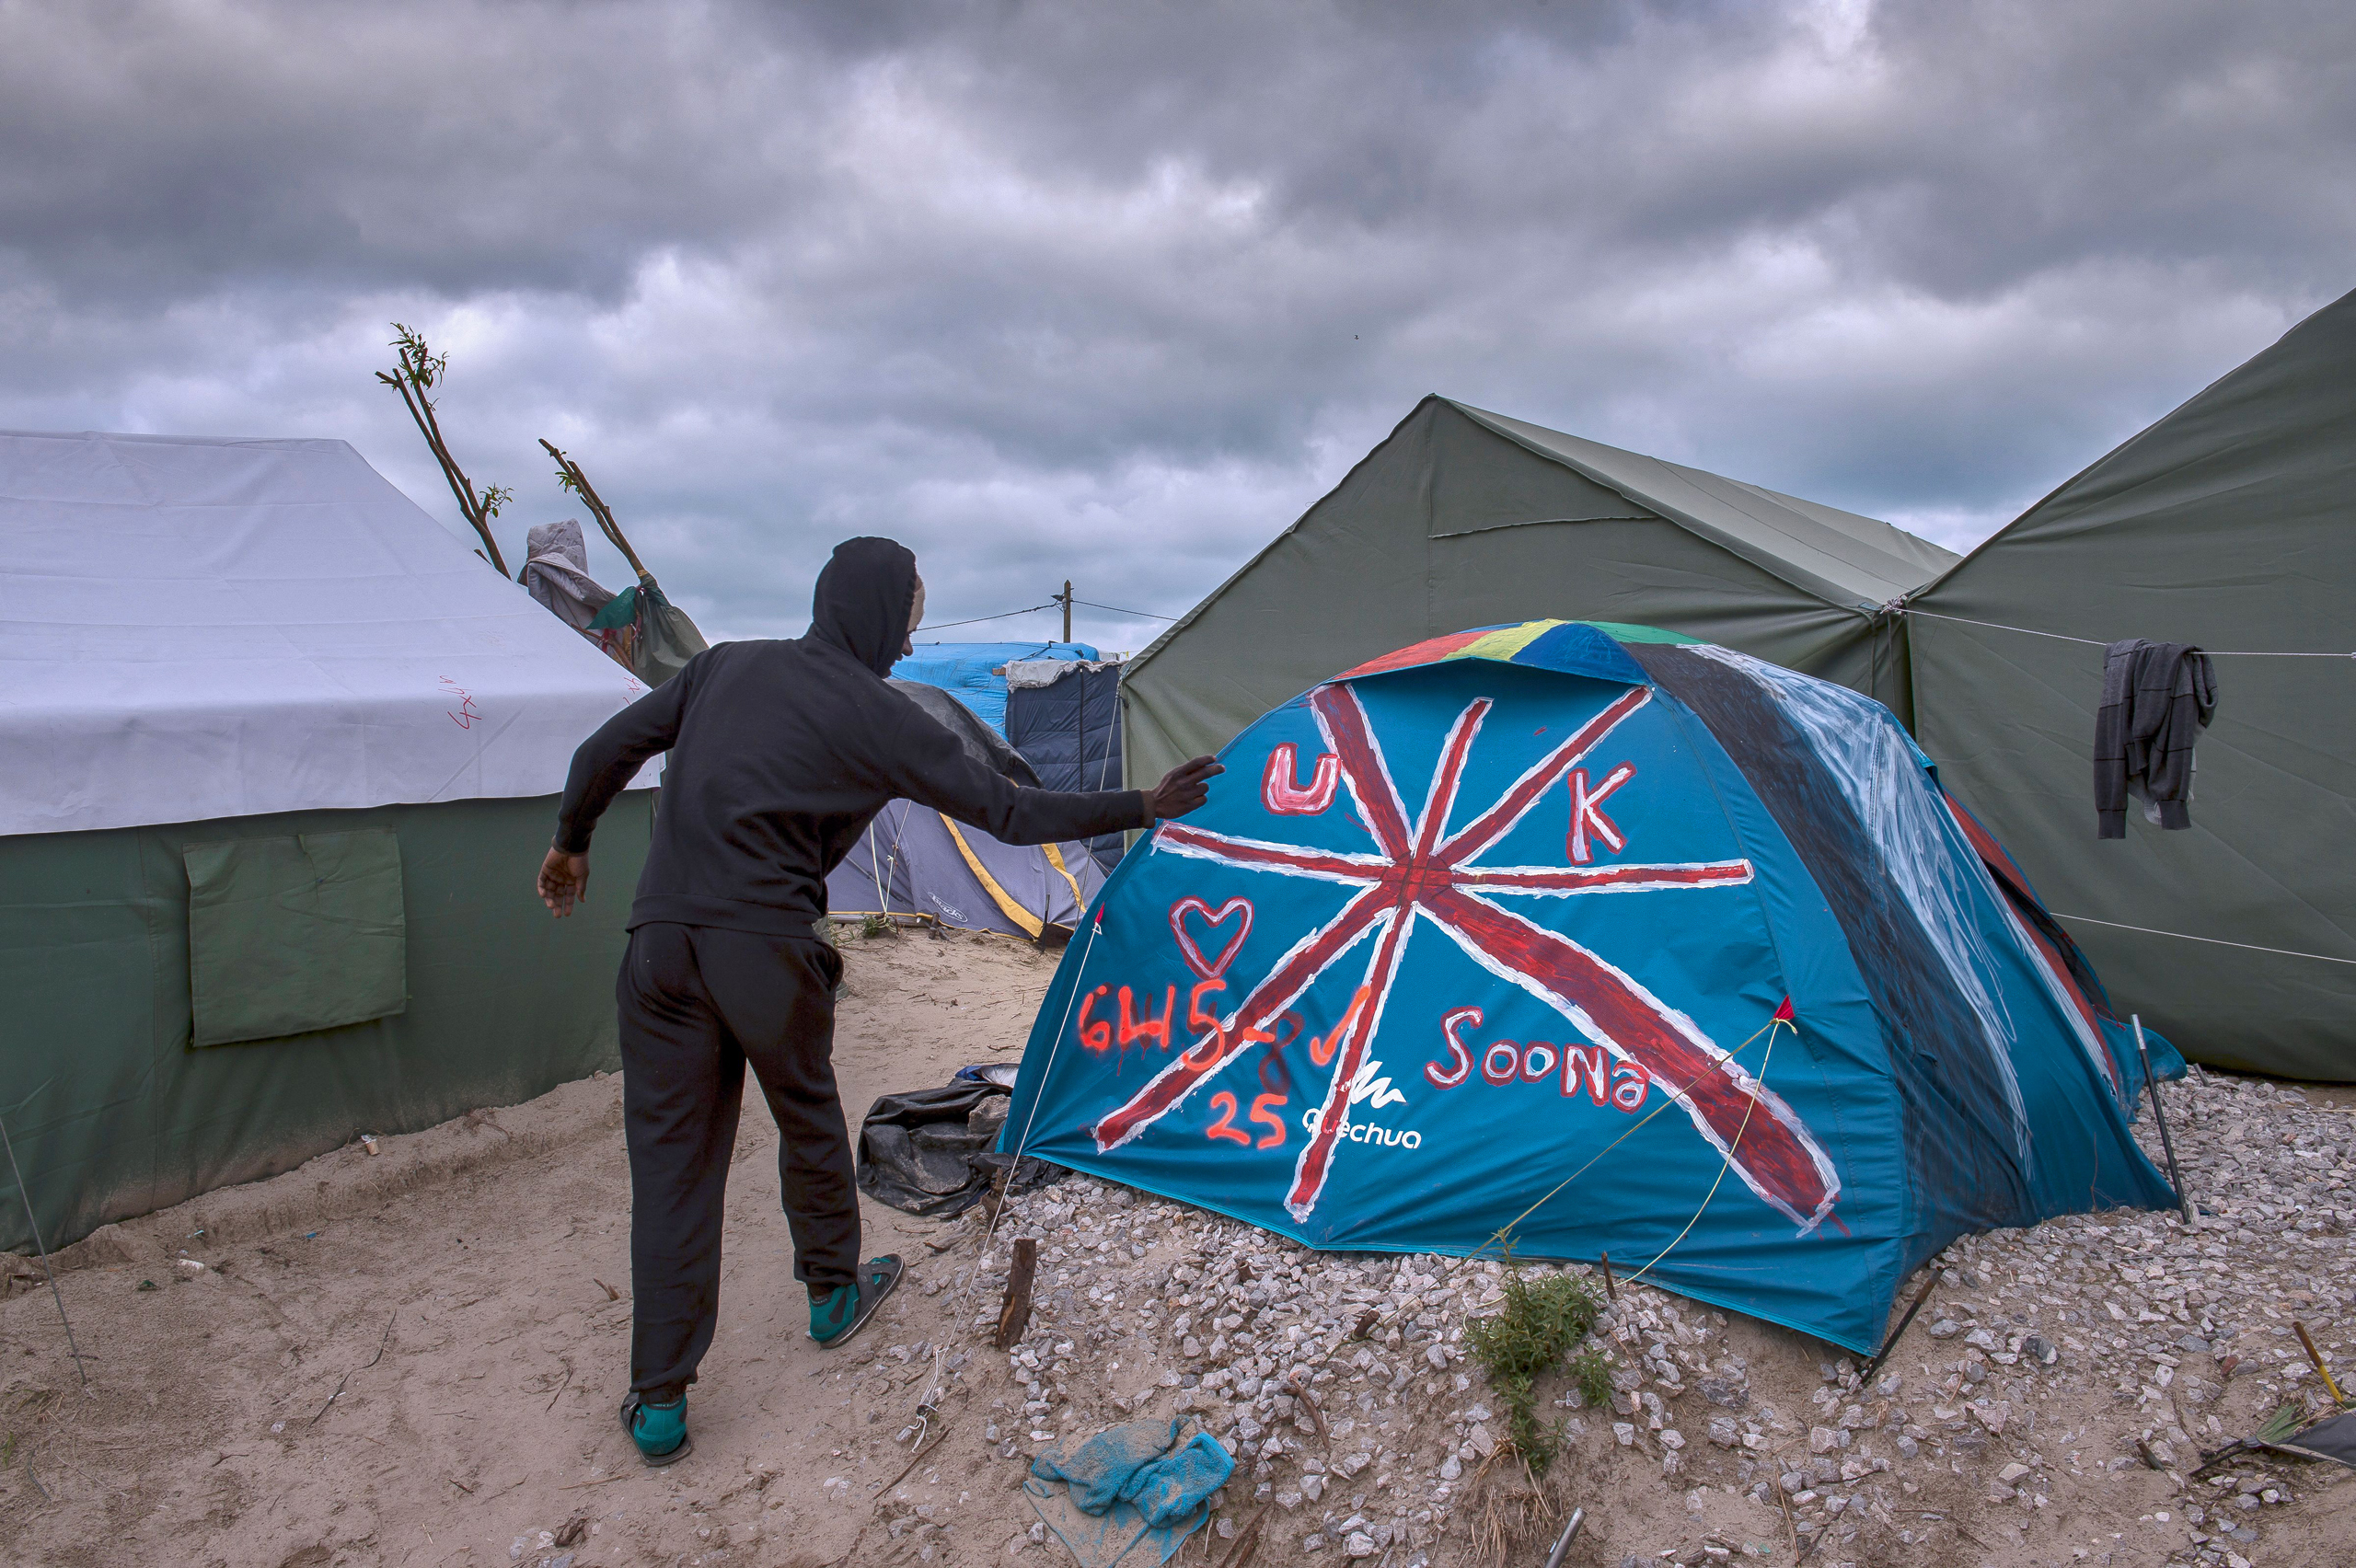 A Sudanese man stands near a tent painted with the British flag at the  Jungle  migrant camp in Calais on Oct. 12, 2016.